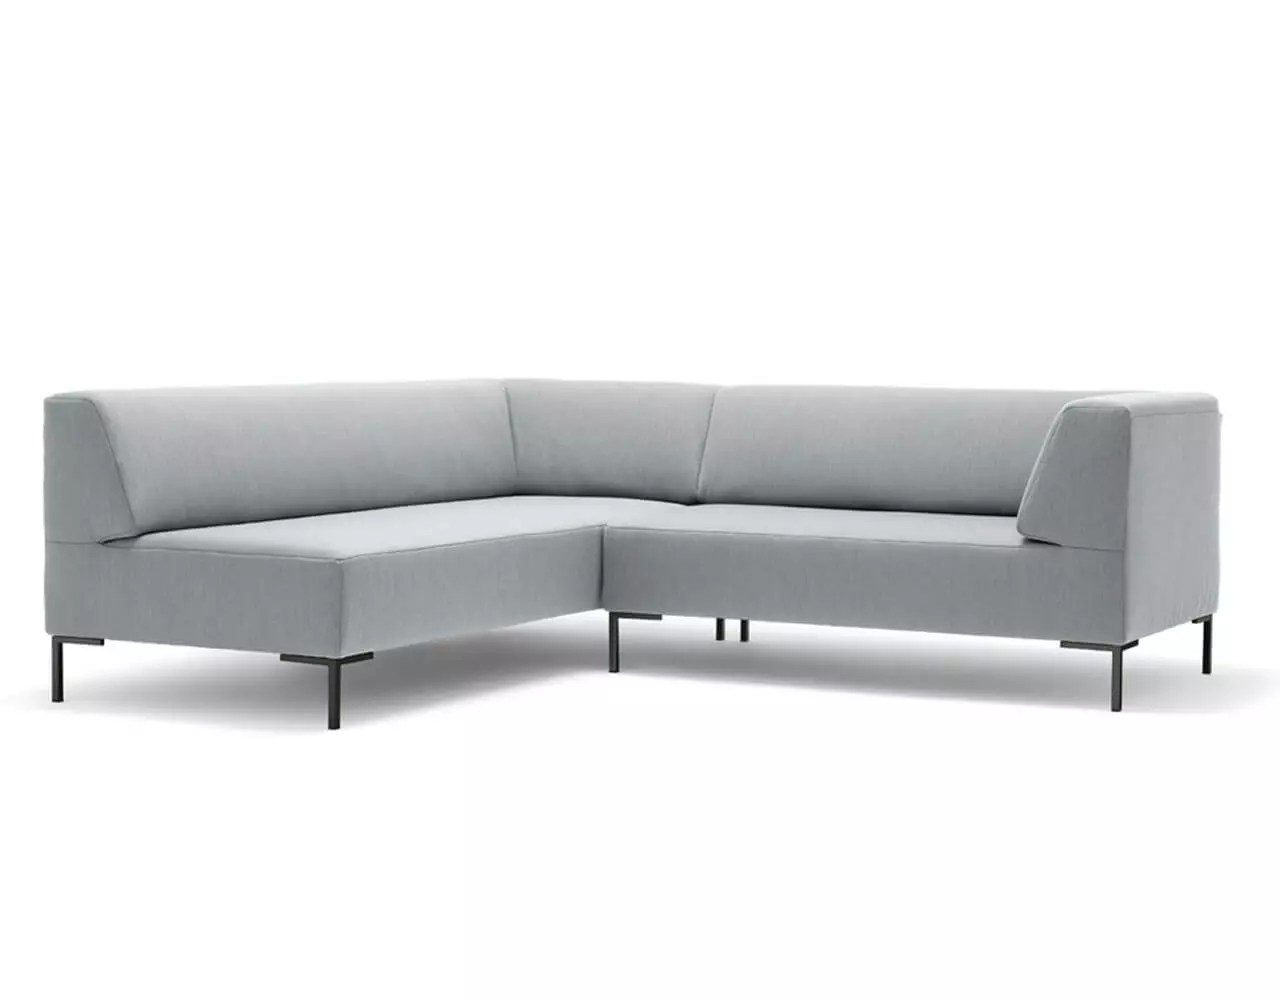 Freistil Sofa Freistil 185 Ecksofa - Home Company Möbel